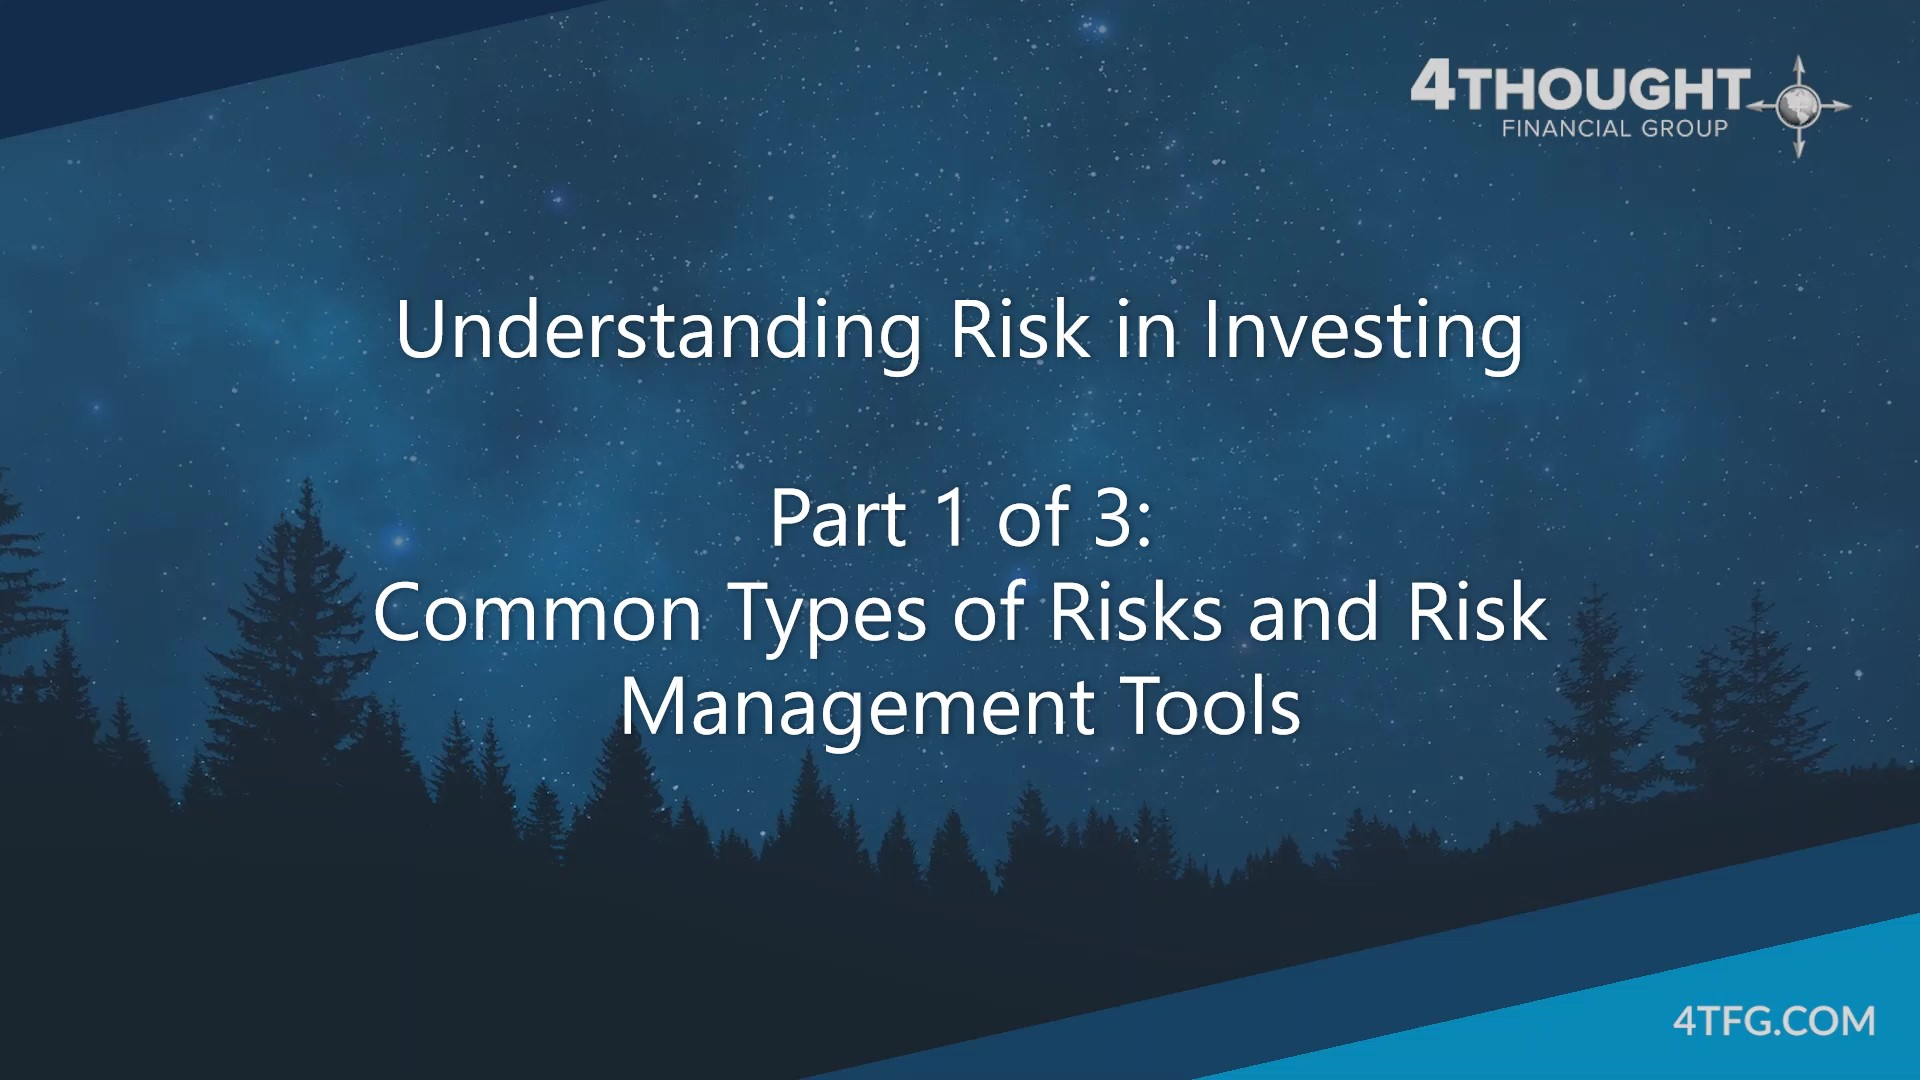 Understanding Risk in Investing - Part 1 - Common Types of Risk and Risk Management Tools